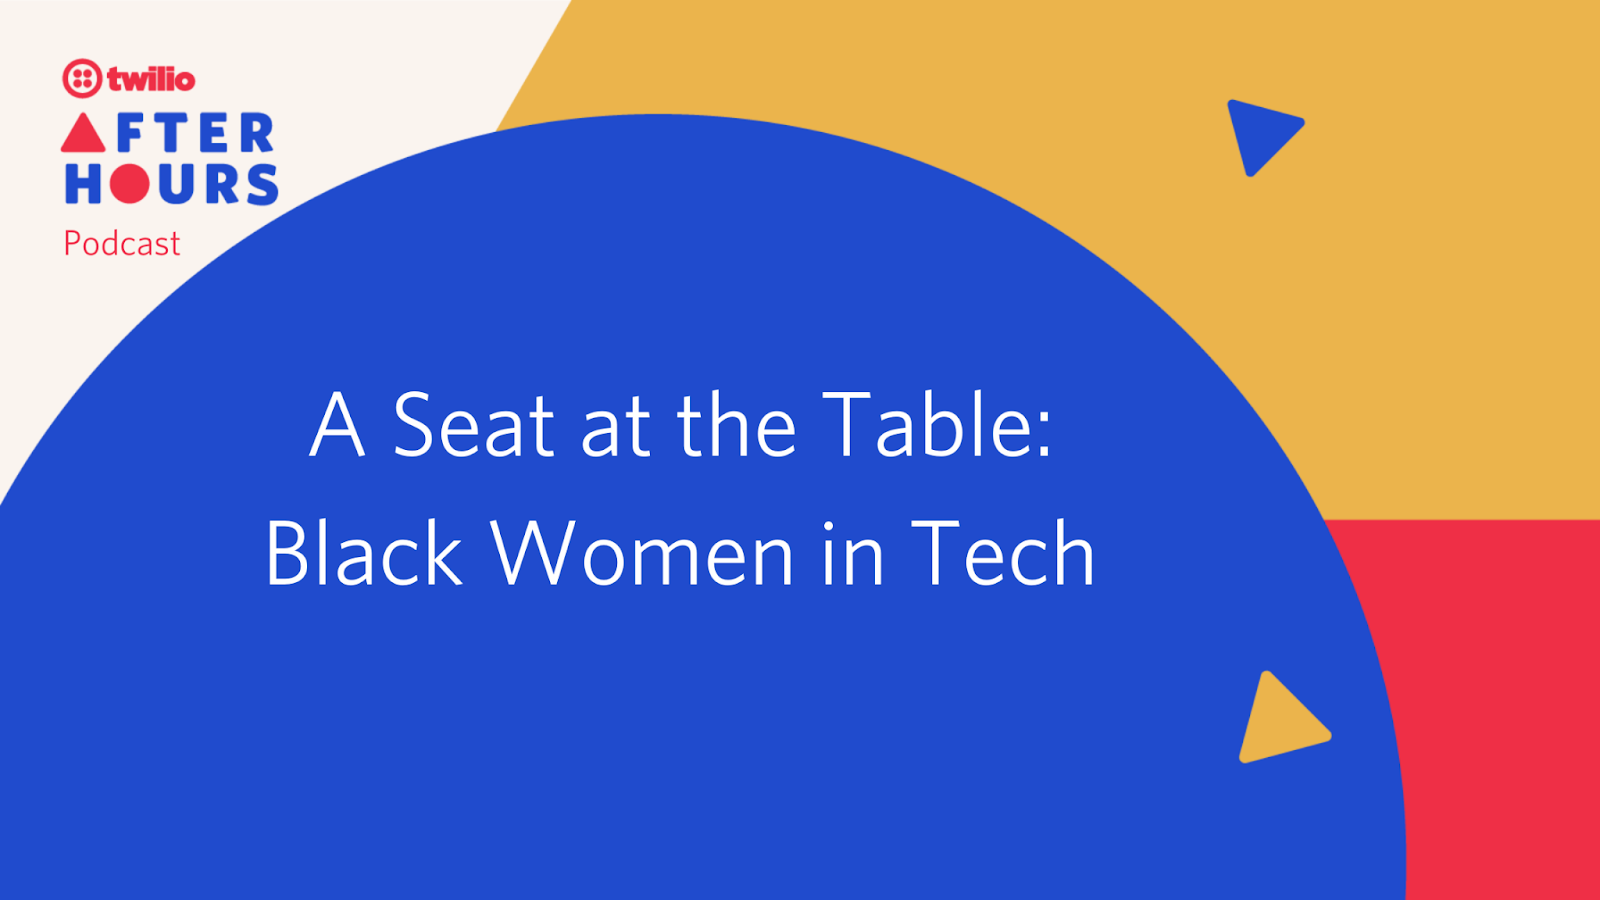 Twilio After Hours Podcast: Black Women in Tech - Twilio